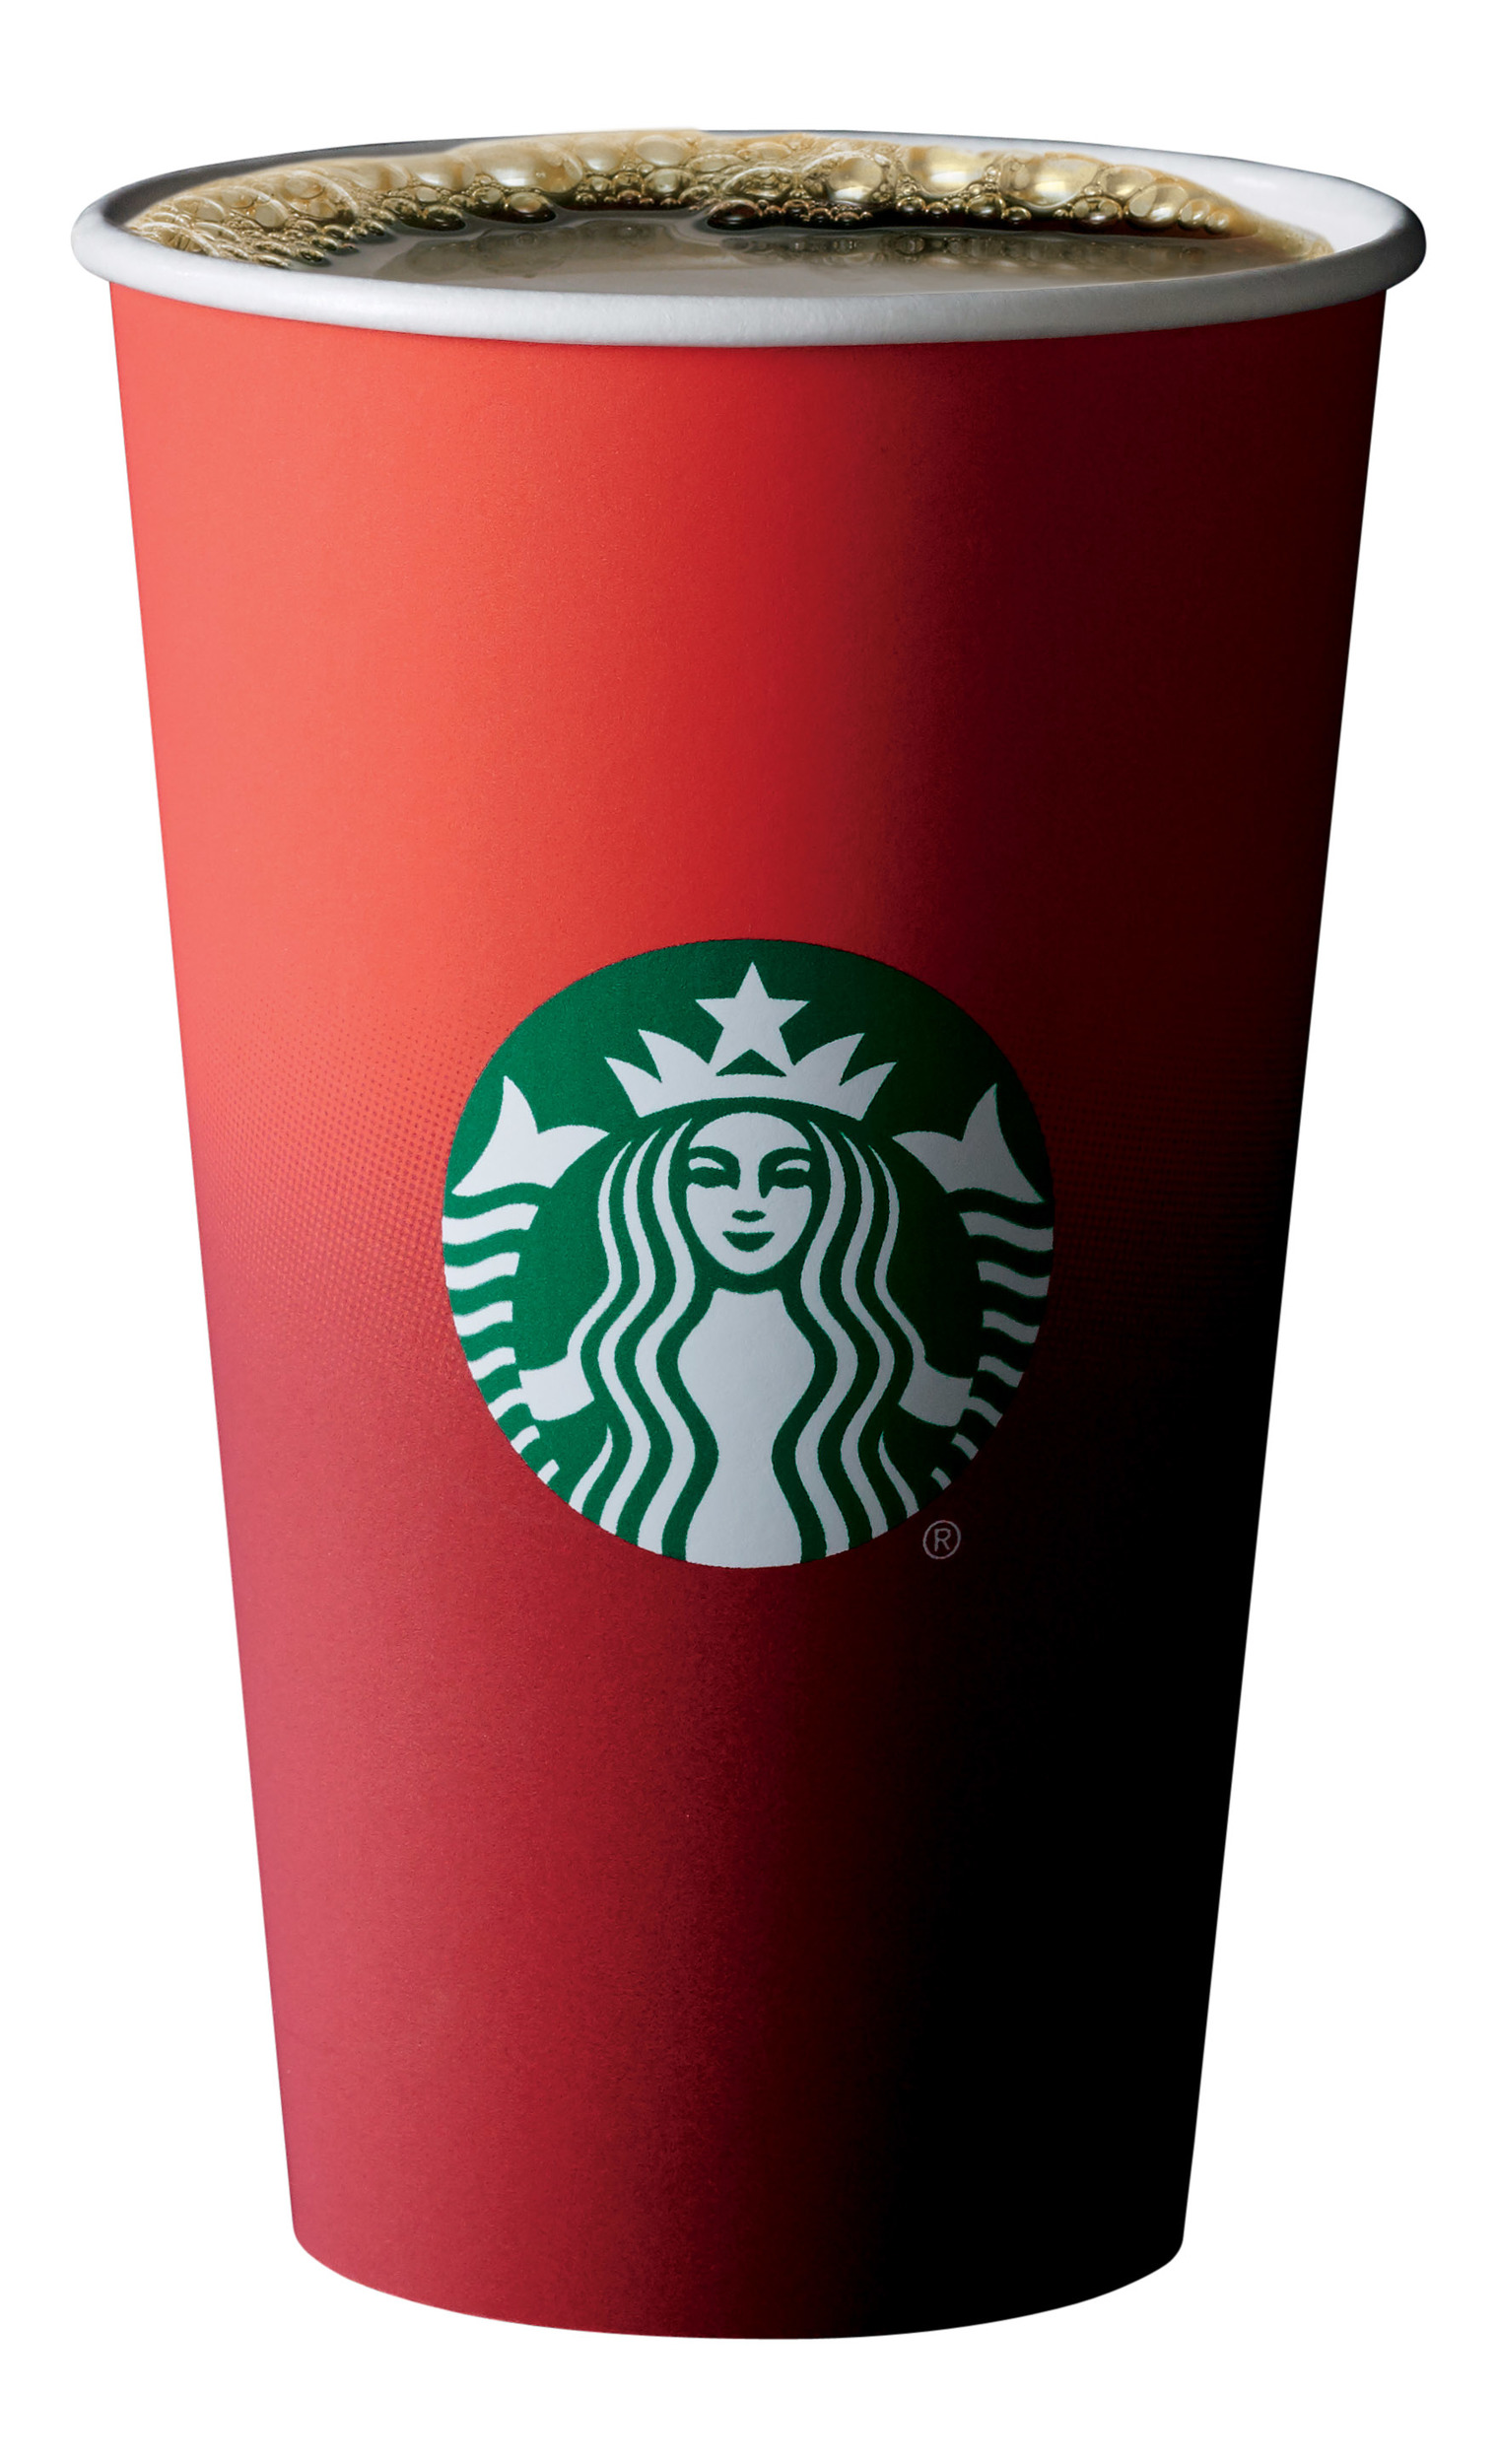 http://www.blogcdn.com/slideshows/images/slides/368/982/9/S3689829/slug/l/2015-red-cup-brewed-coffee-1.jpg